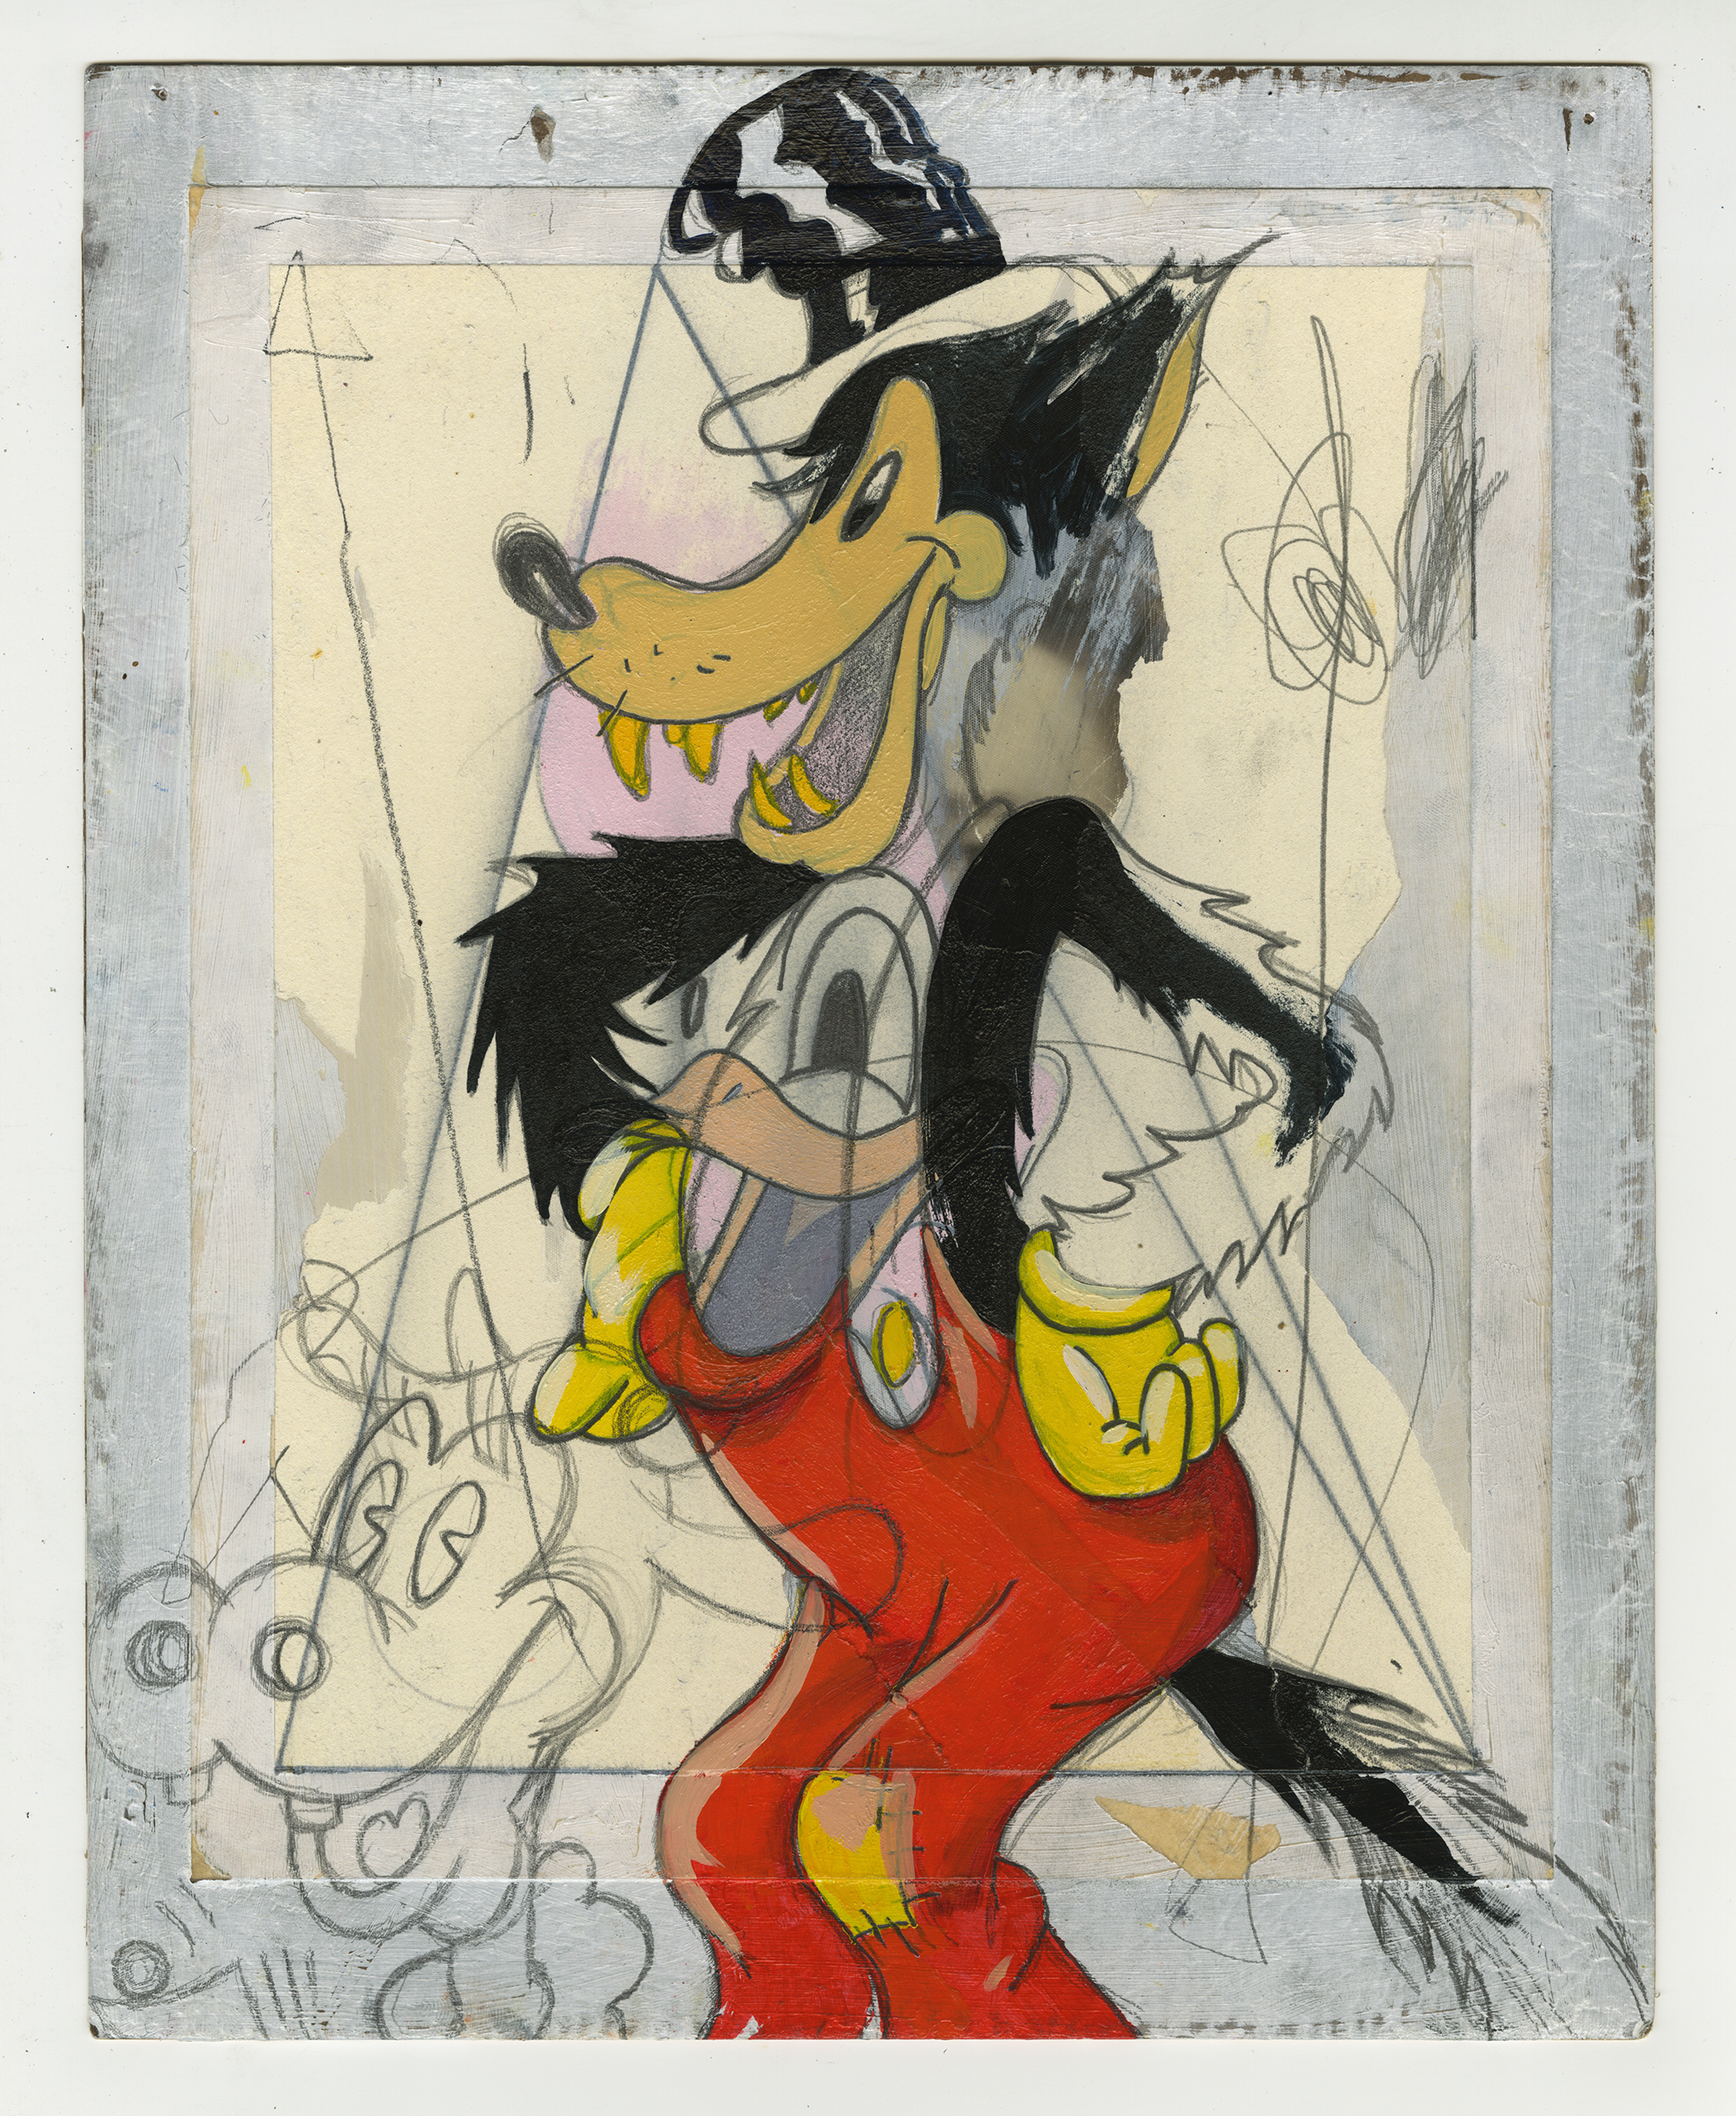 New findings come along the investigation of the archives of Ricardo Friedrich ( S.S. Hans Heidrich) located in his Argentinian mansion. Drawings like this are believed to be sketches for large scale paintings dated around 1975-78, following a style similar to Henry Darger or New Zealand artist Susan Te Kahurangi King.  Untitled. Oil, pencil and collage on cardboard. 1975-78. 31 x 25 cm.